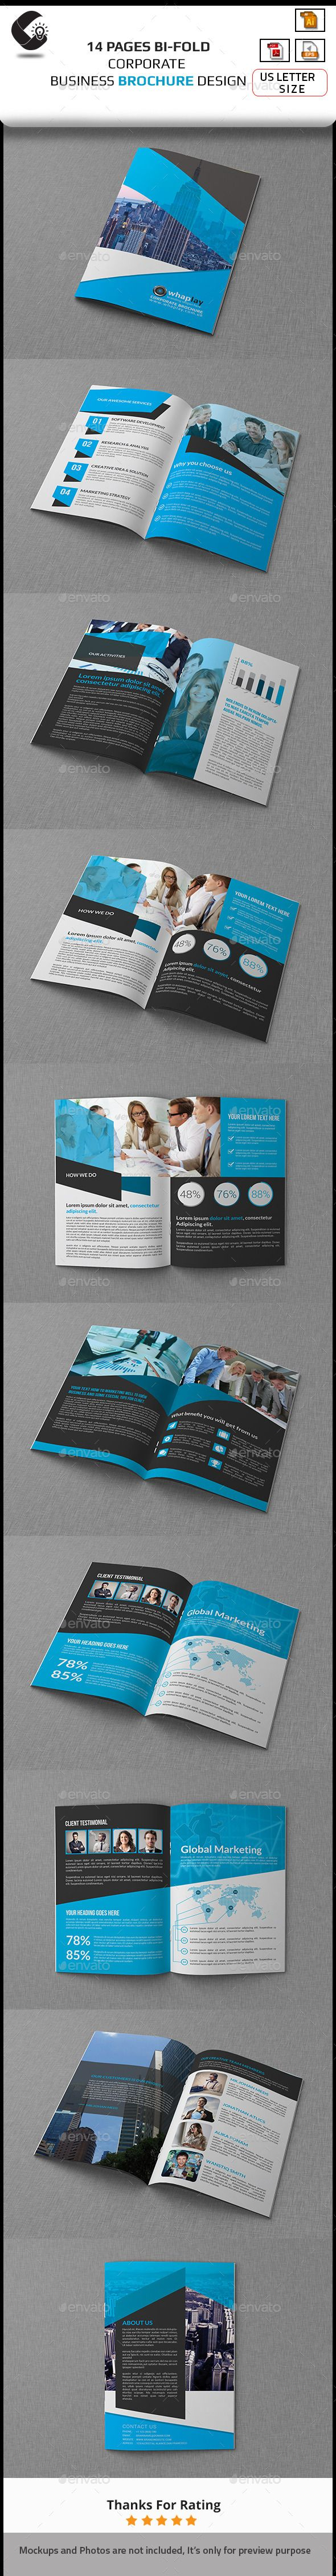 Amazing 1 Year Experienced Software Developer Resume Sample Small 10 Best Resume Designs Solid 1099 Template Word 11 Vuze Search Templates Youthful 1st Job Resume Template Bright2 Page Resume Format 20 Best Images About Template   11x17 Booklet Brochure On ..